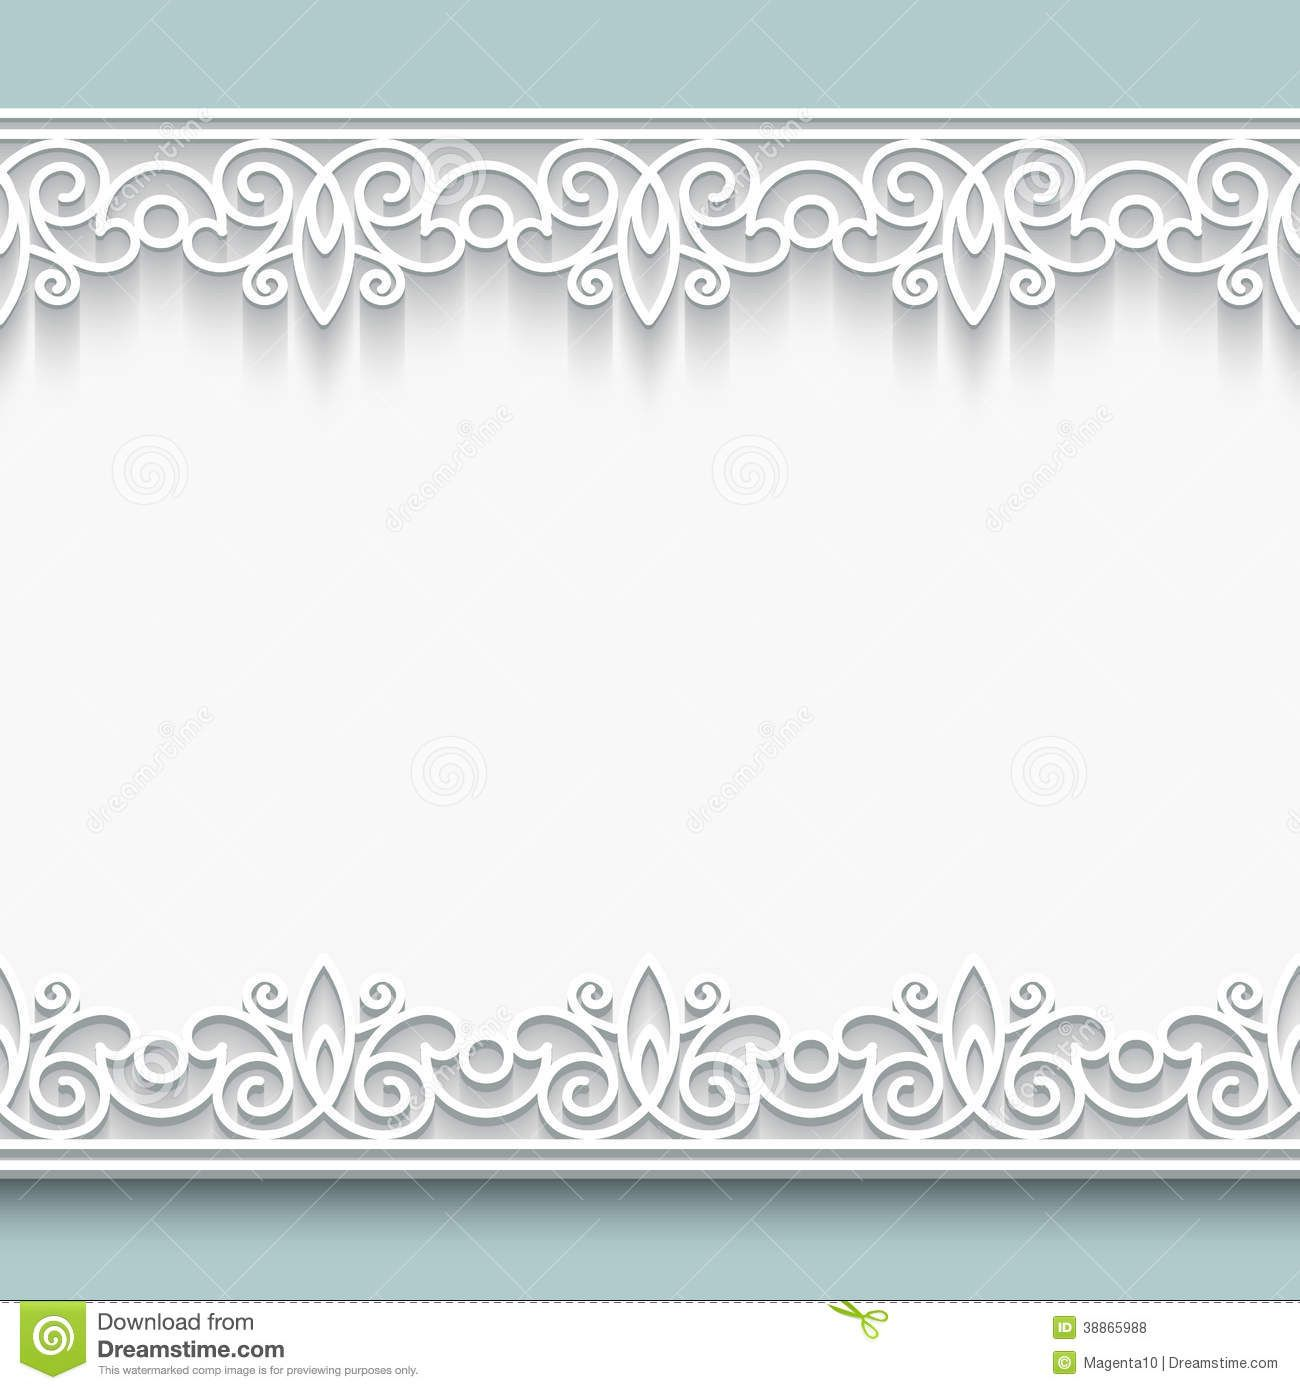 cutting dies for scrapbooking | Lace Background Png images | Cutting ...